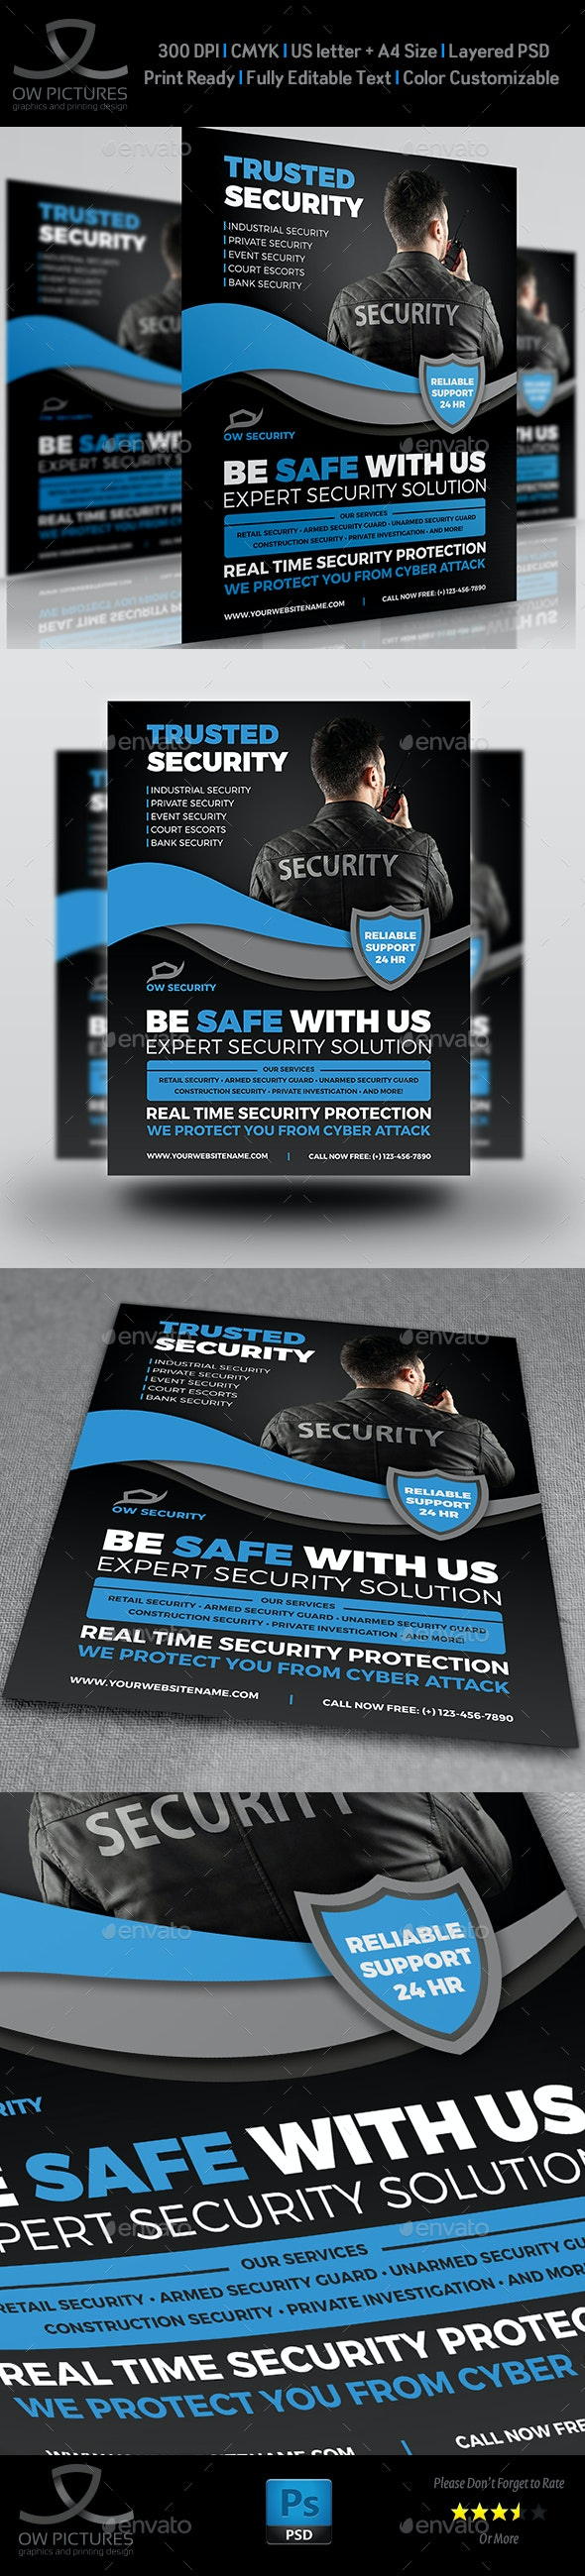 Security Services Flyer Template - Flyers Print Templates